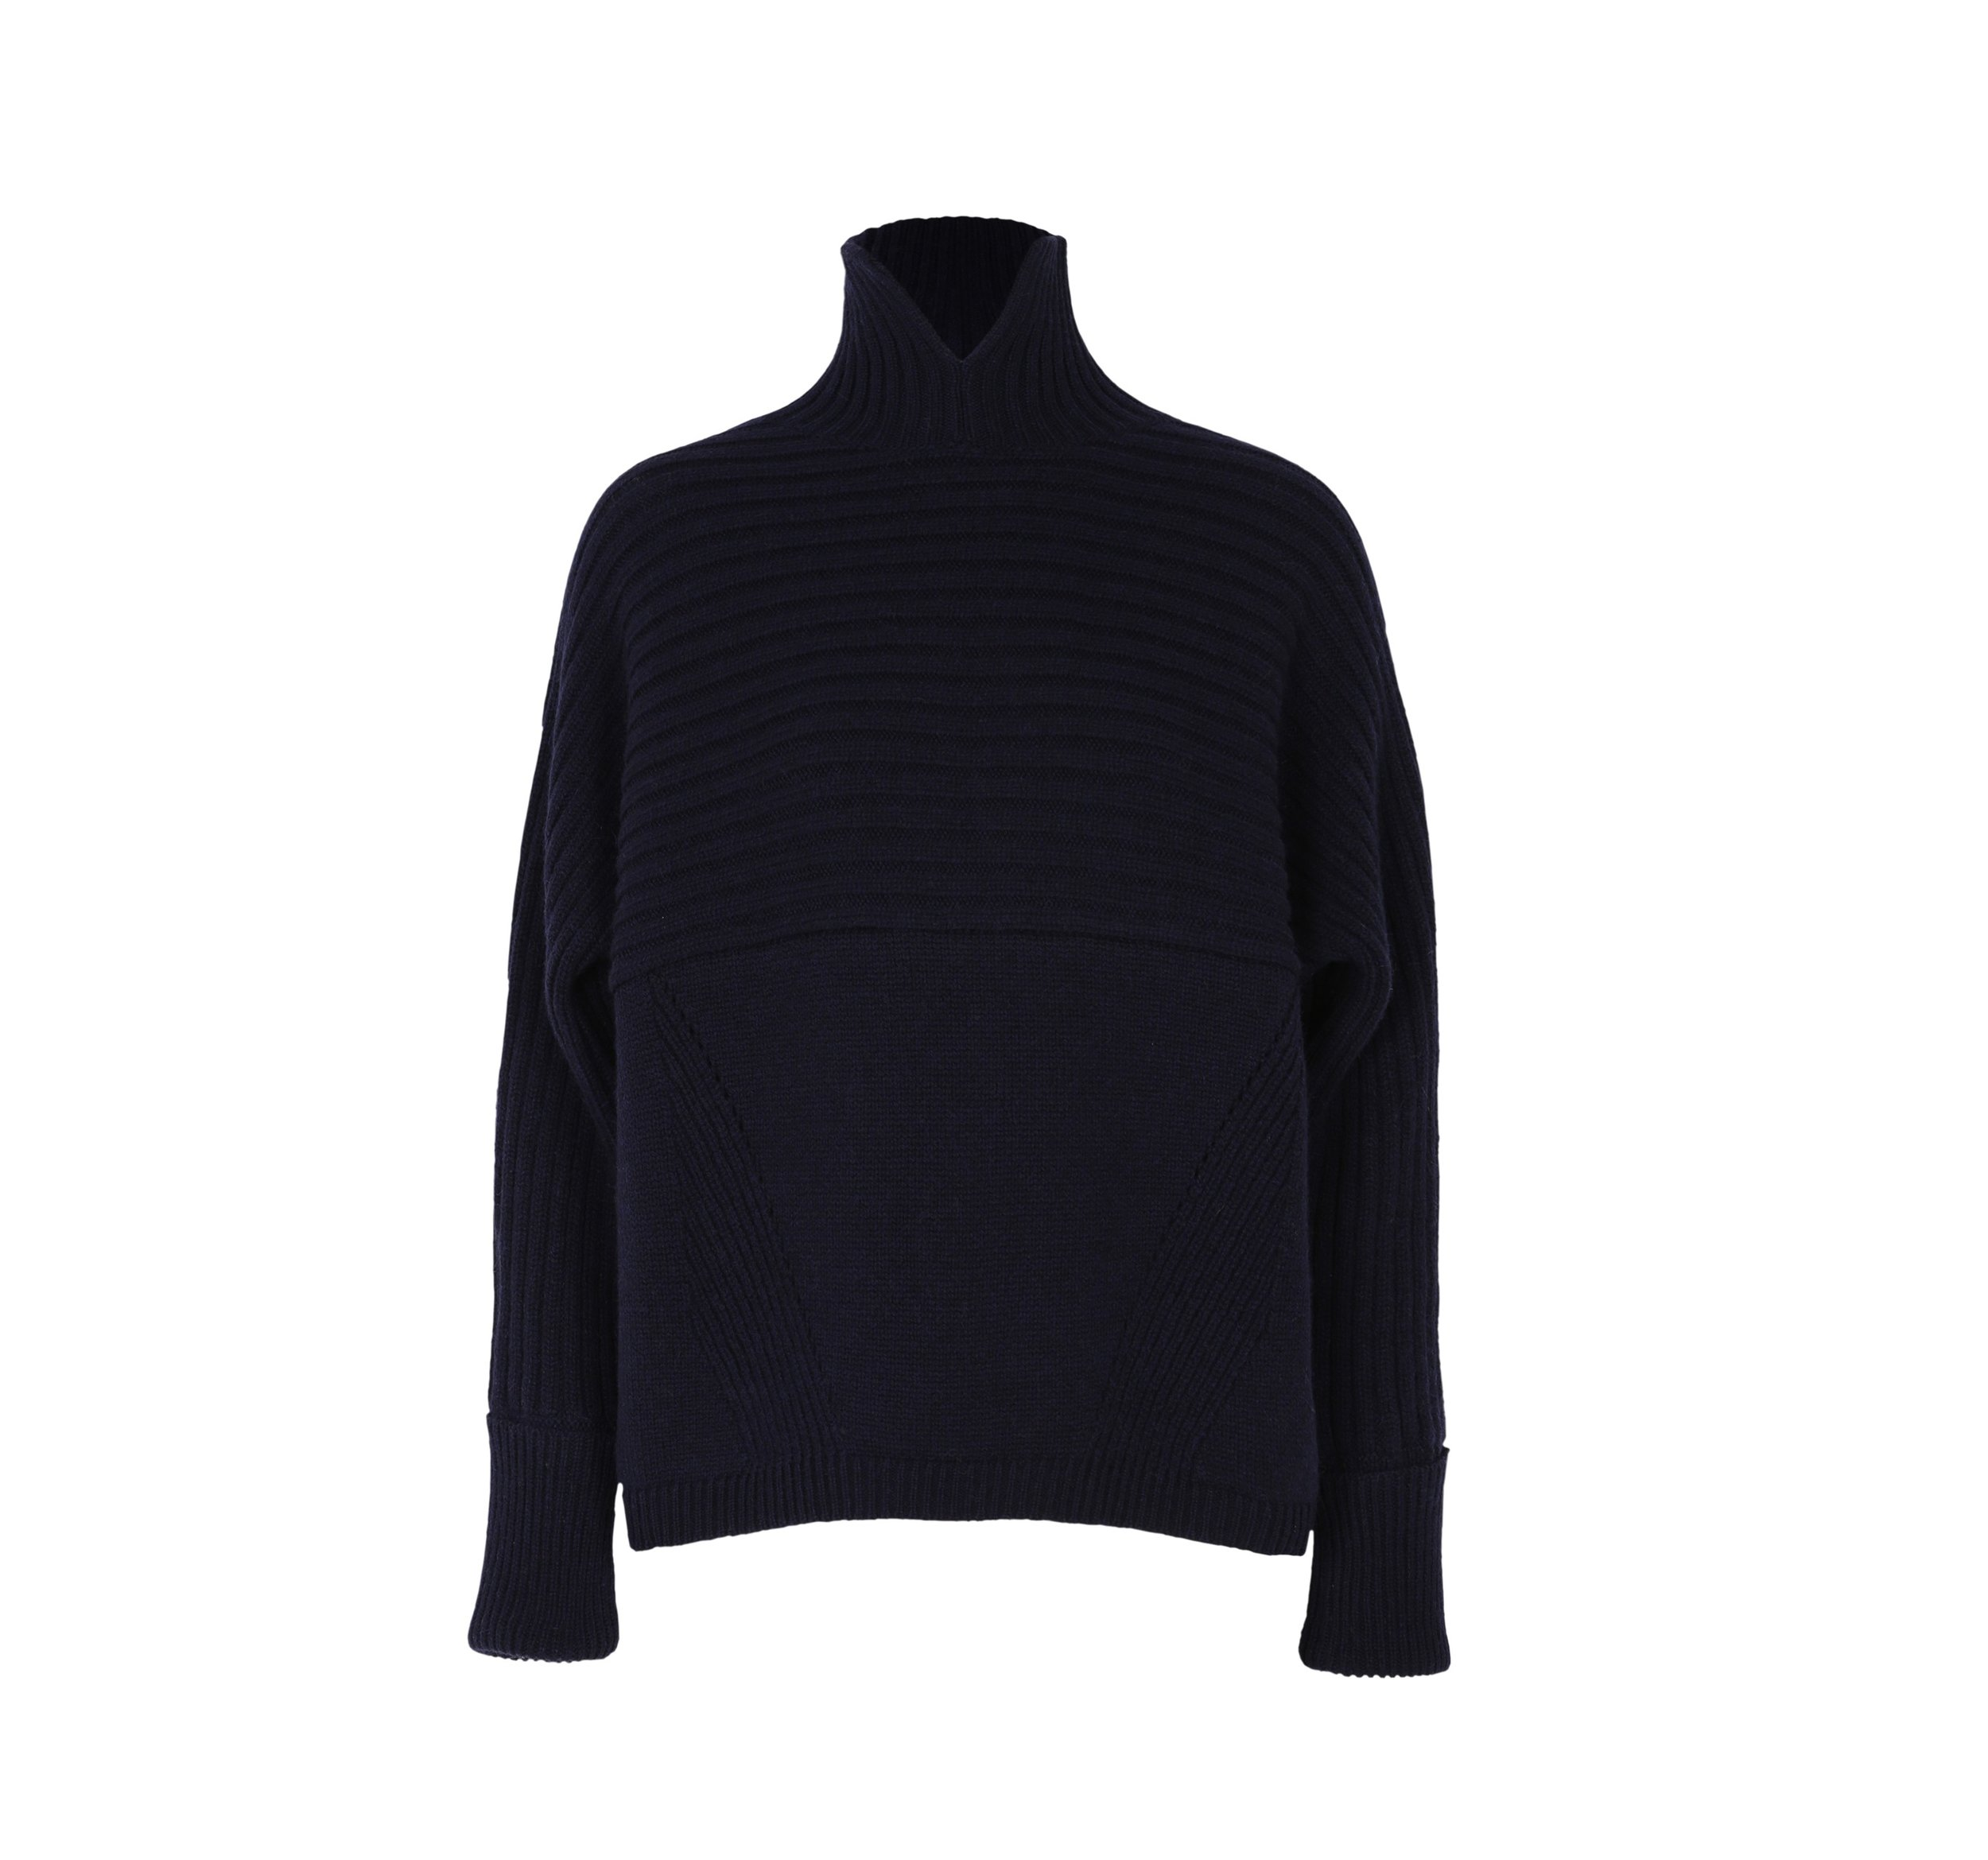 Dorothee Schumacher Favorite Destination Turtleneck Sweater